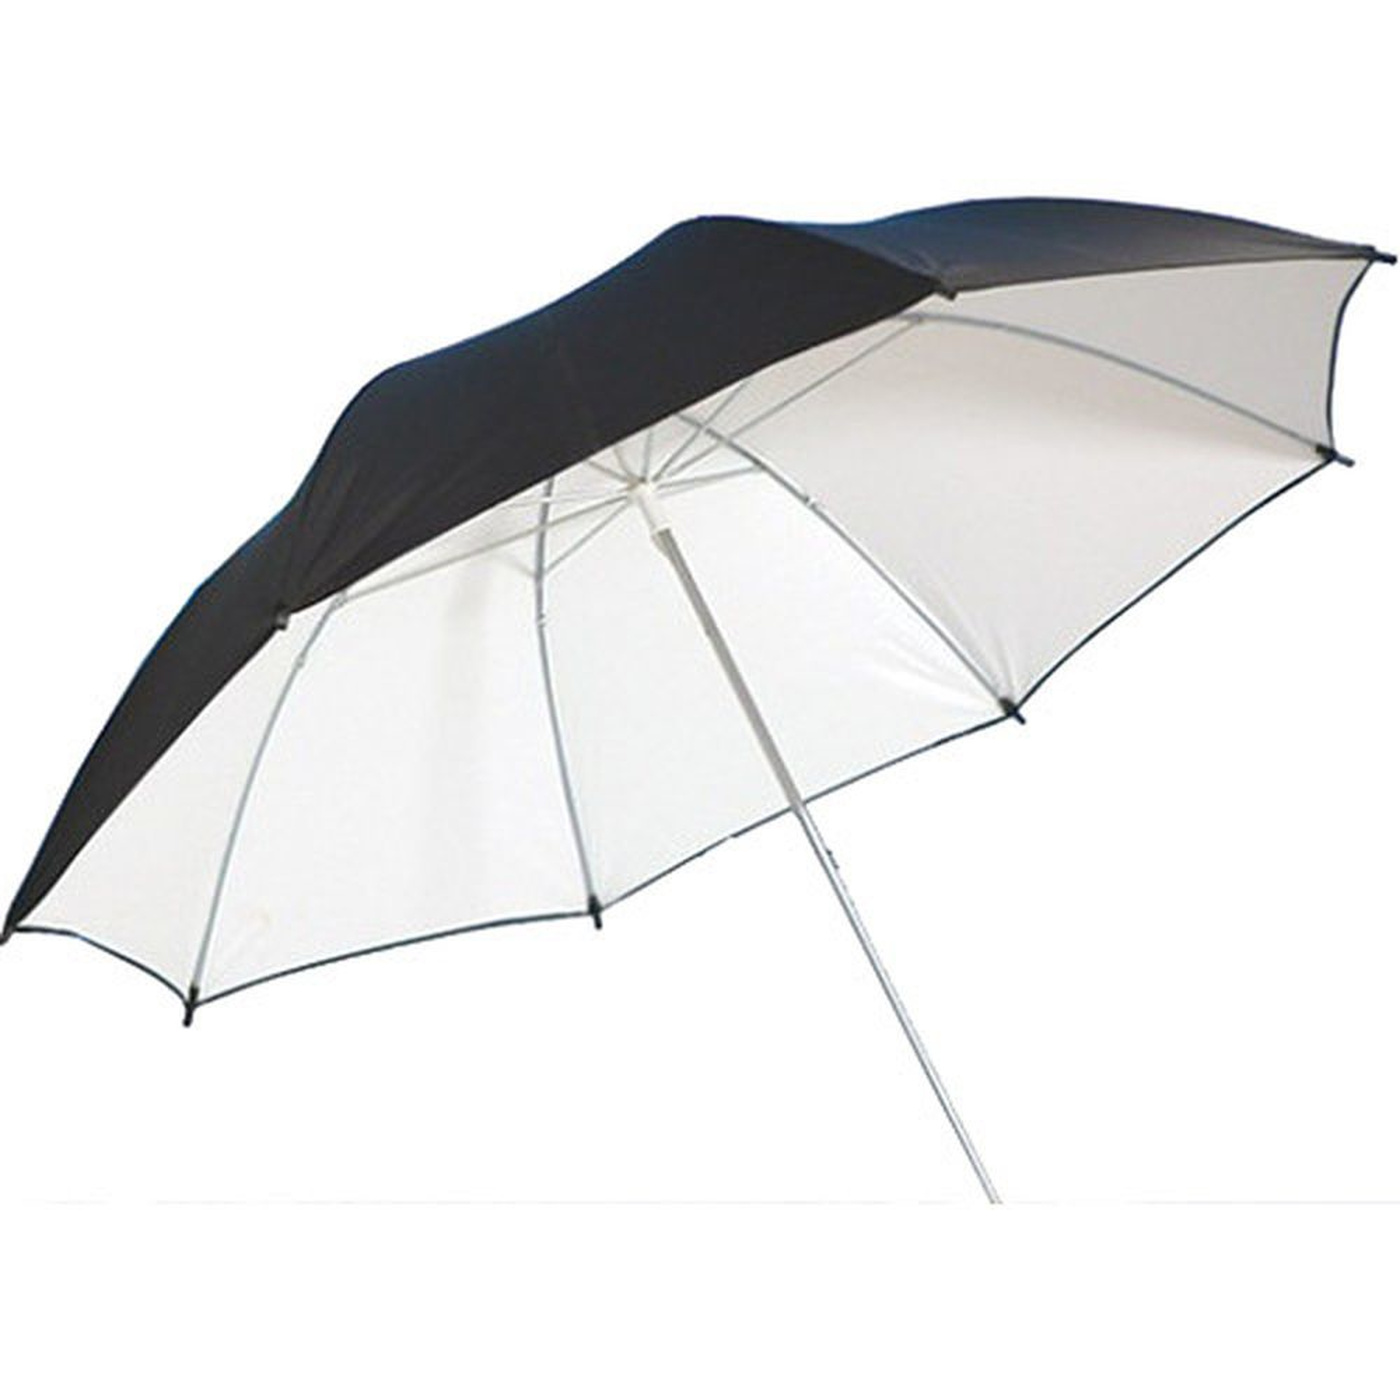 Nicefoto BW-170CM DEEP Transparent Umbrella BLACK/WHITE | 170cm Light Modifiers Professional Lighting